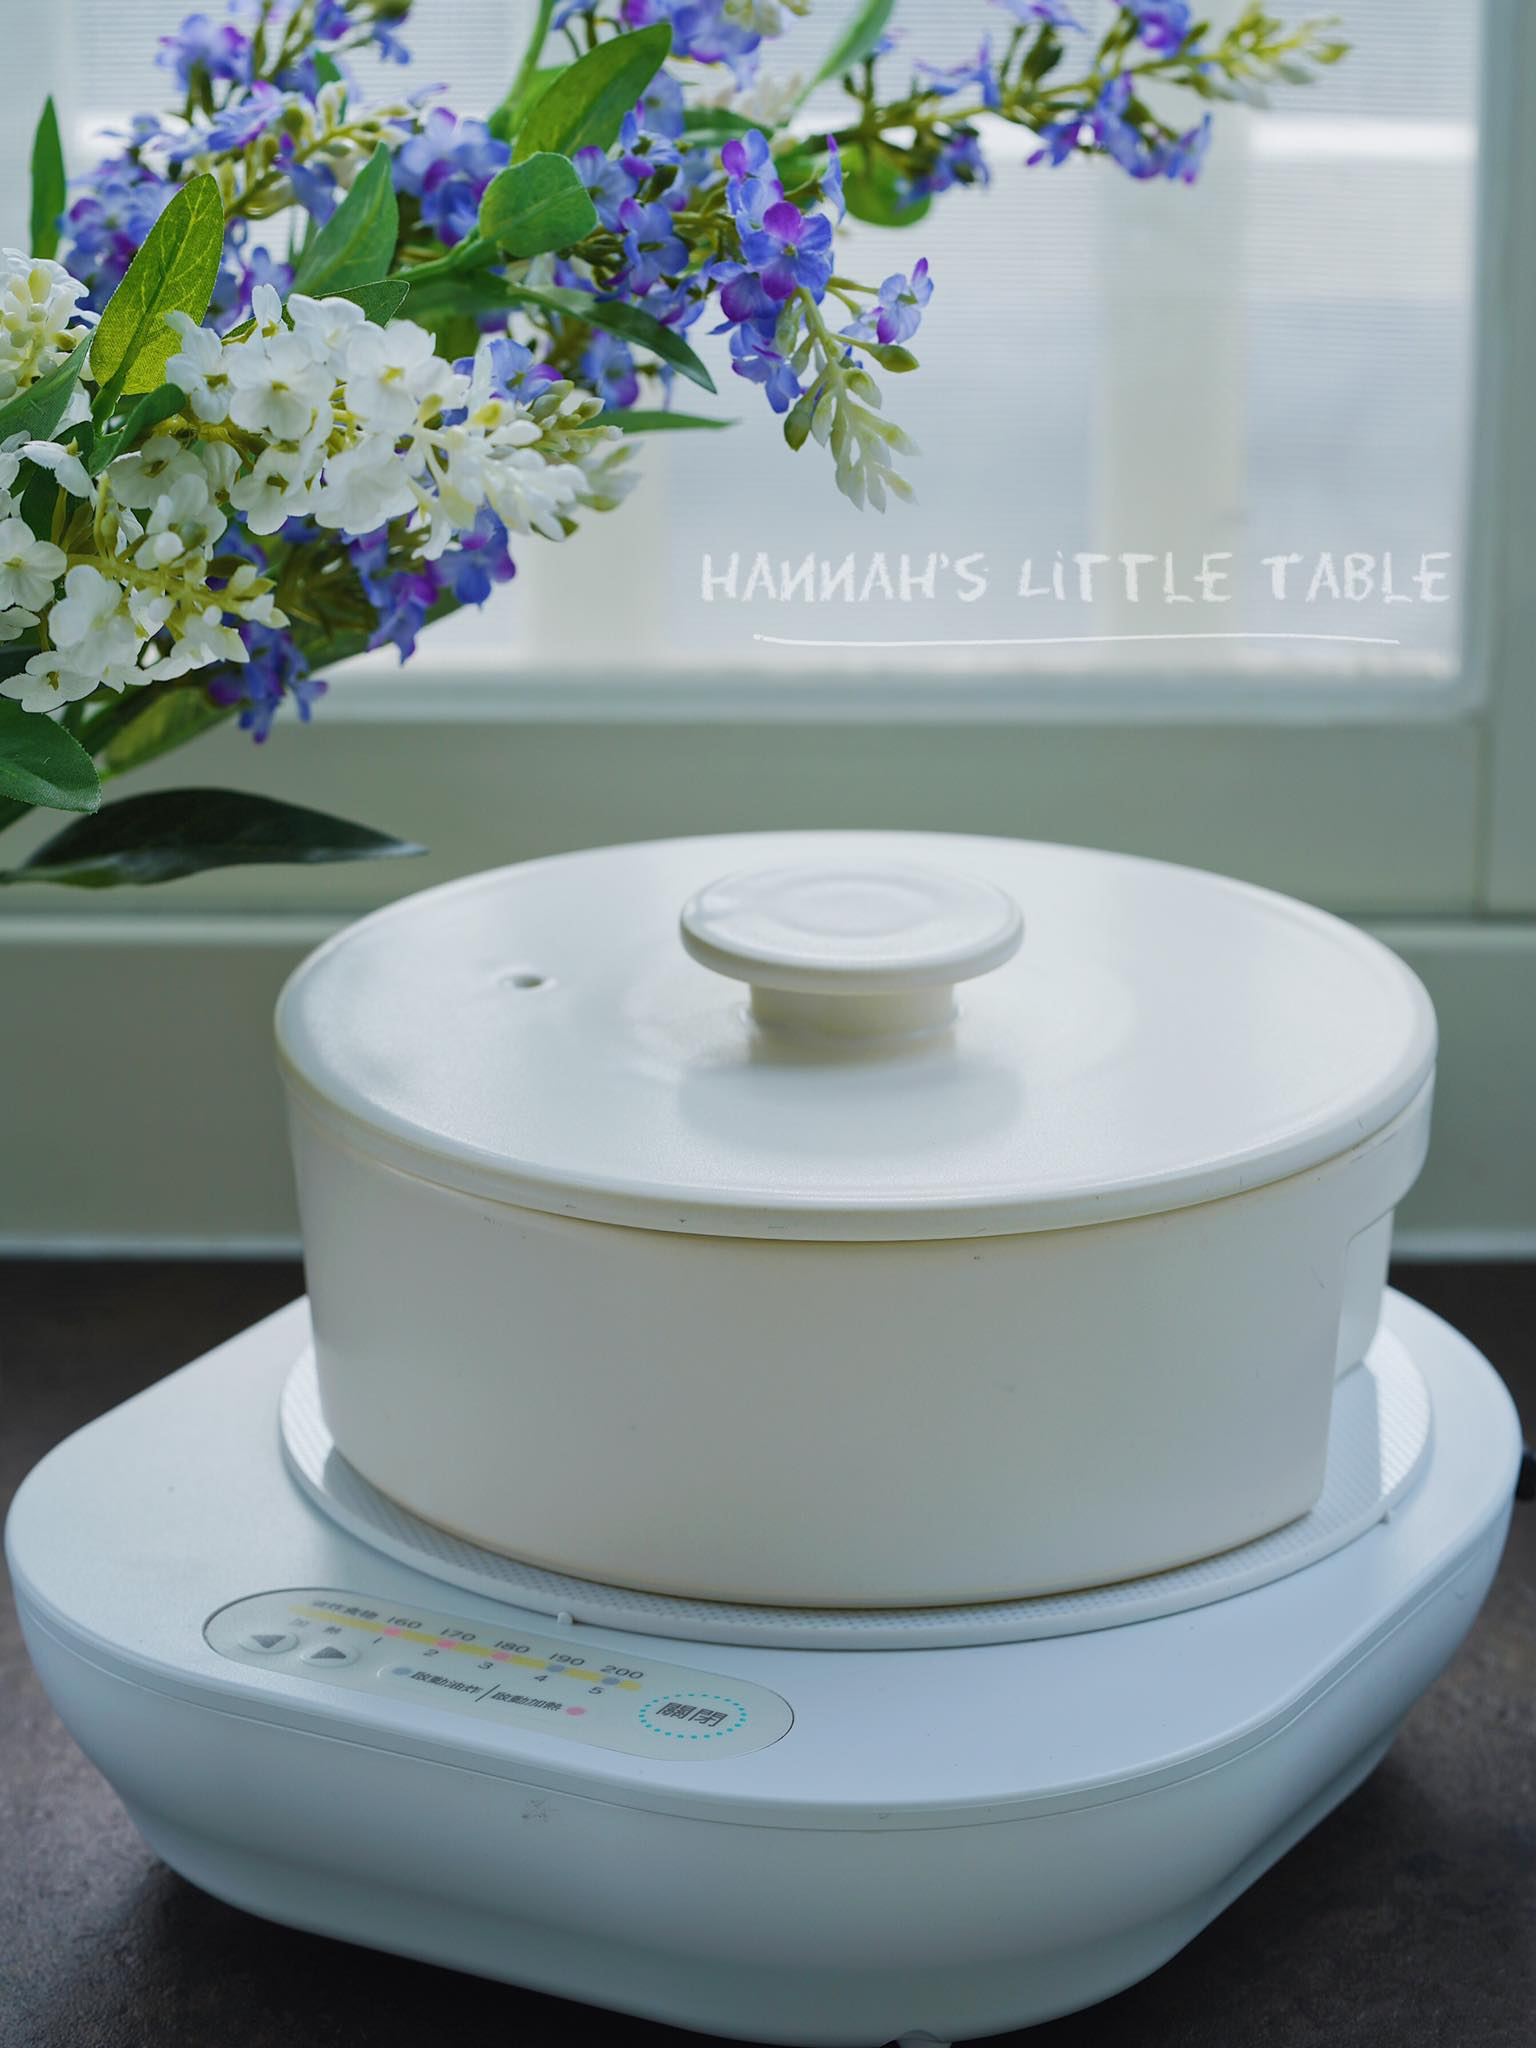 漢娜的小餐桌 Hannah's Little Table